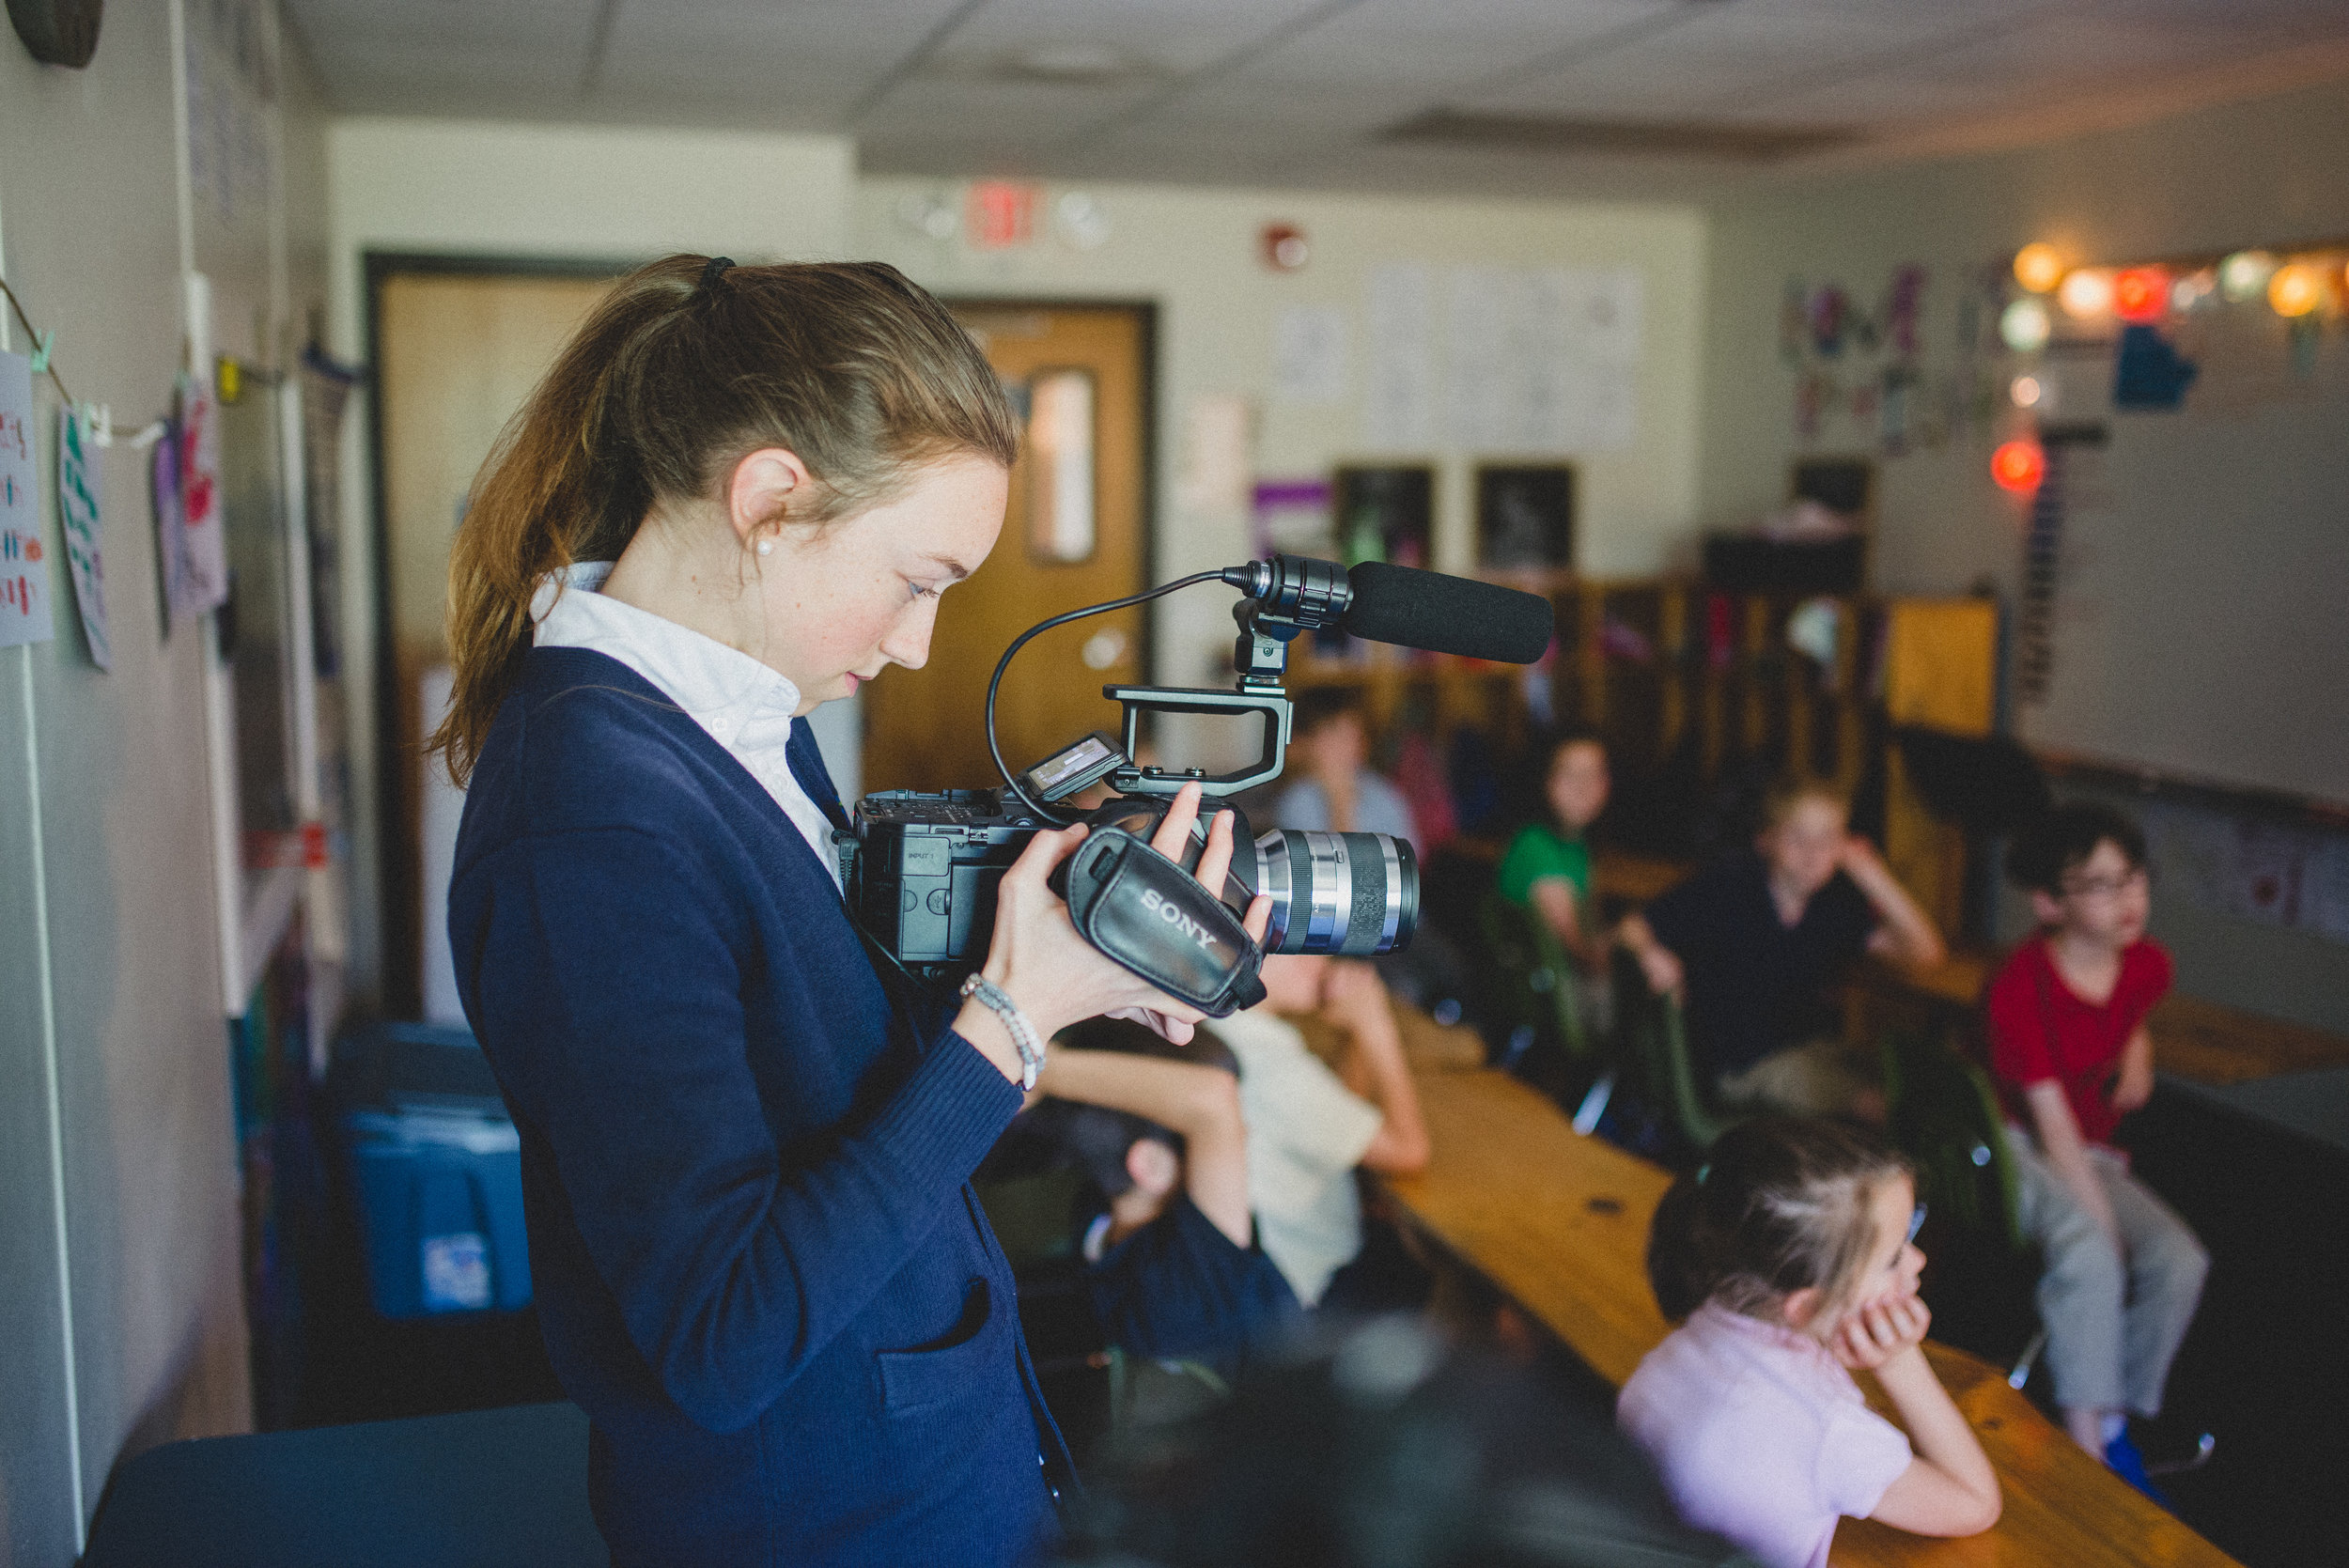 Merci Warren is interested in pursuing journalism as a career. On the Directed Studies shadow day, she practiced her documentation skills through video and writing.